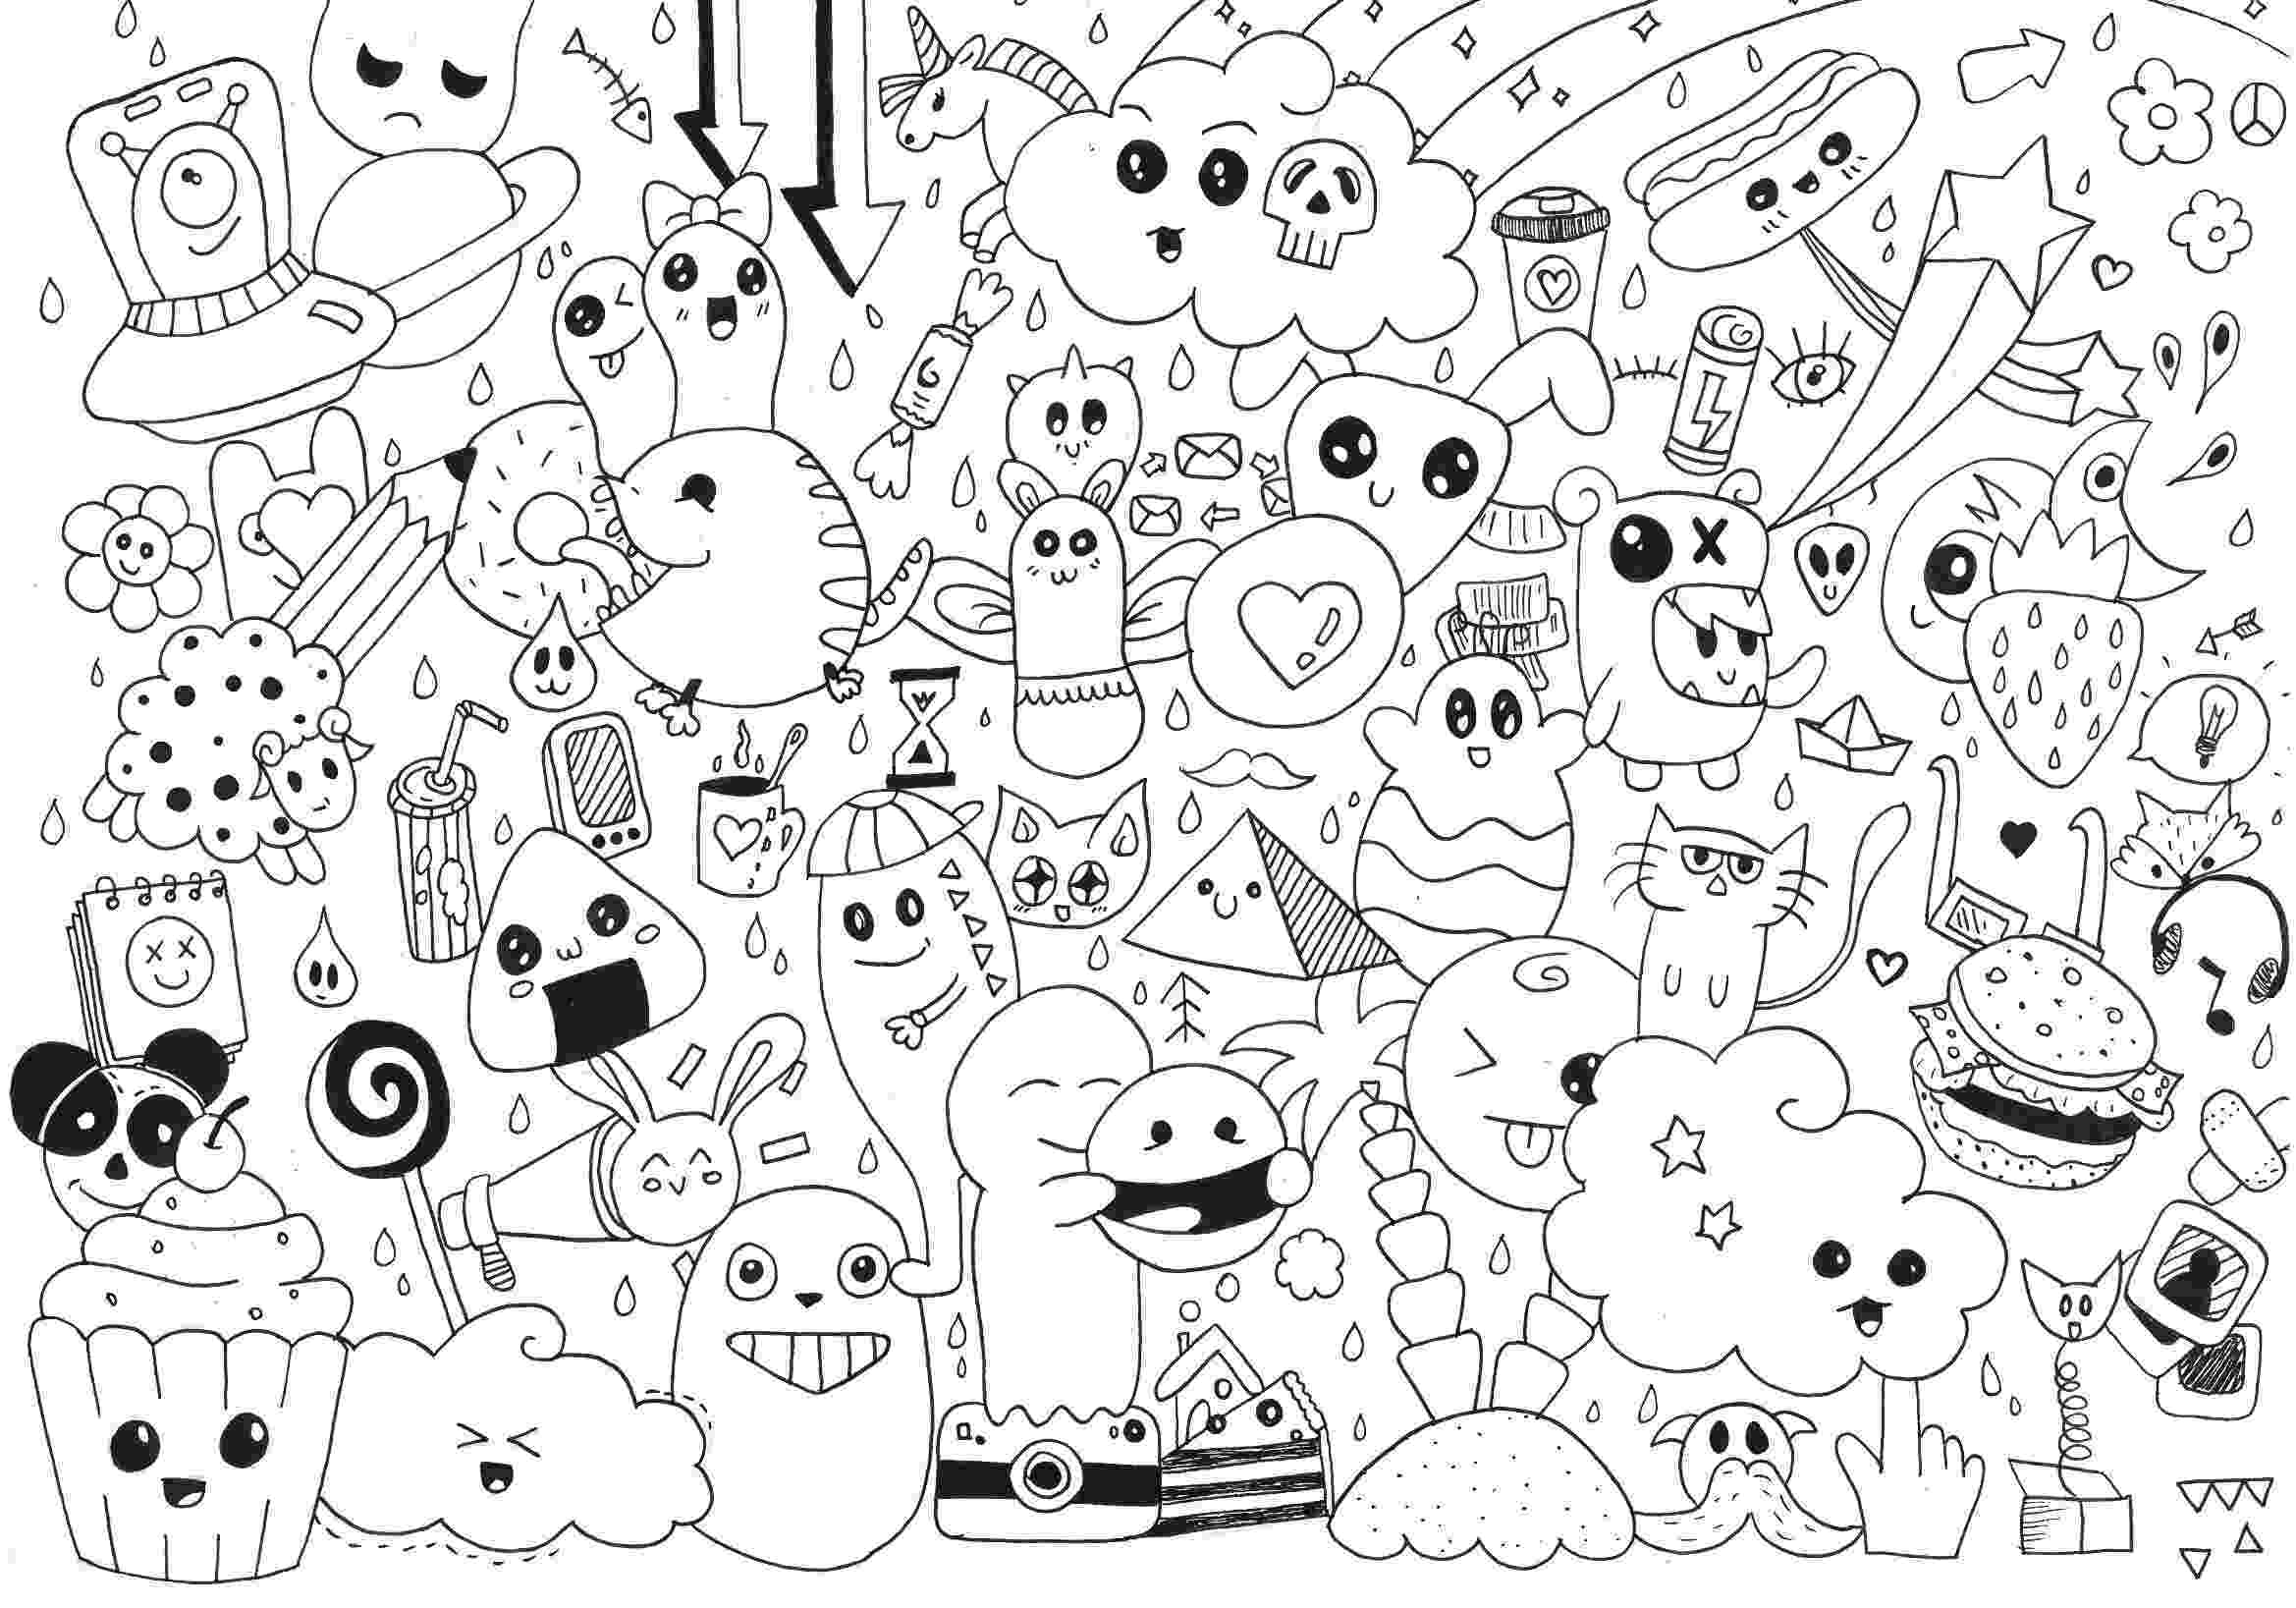 doodle art colouring doodle art to print for free doodle art kids coloring pages doodle art colouring